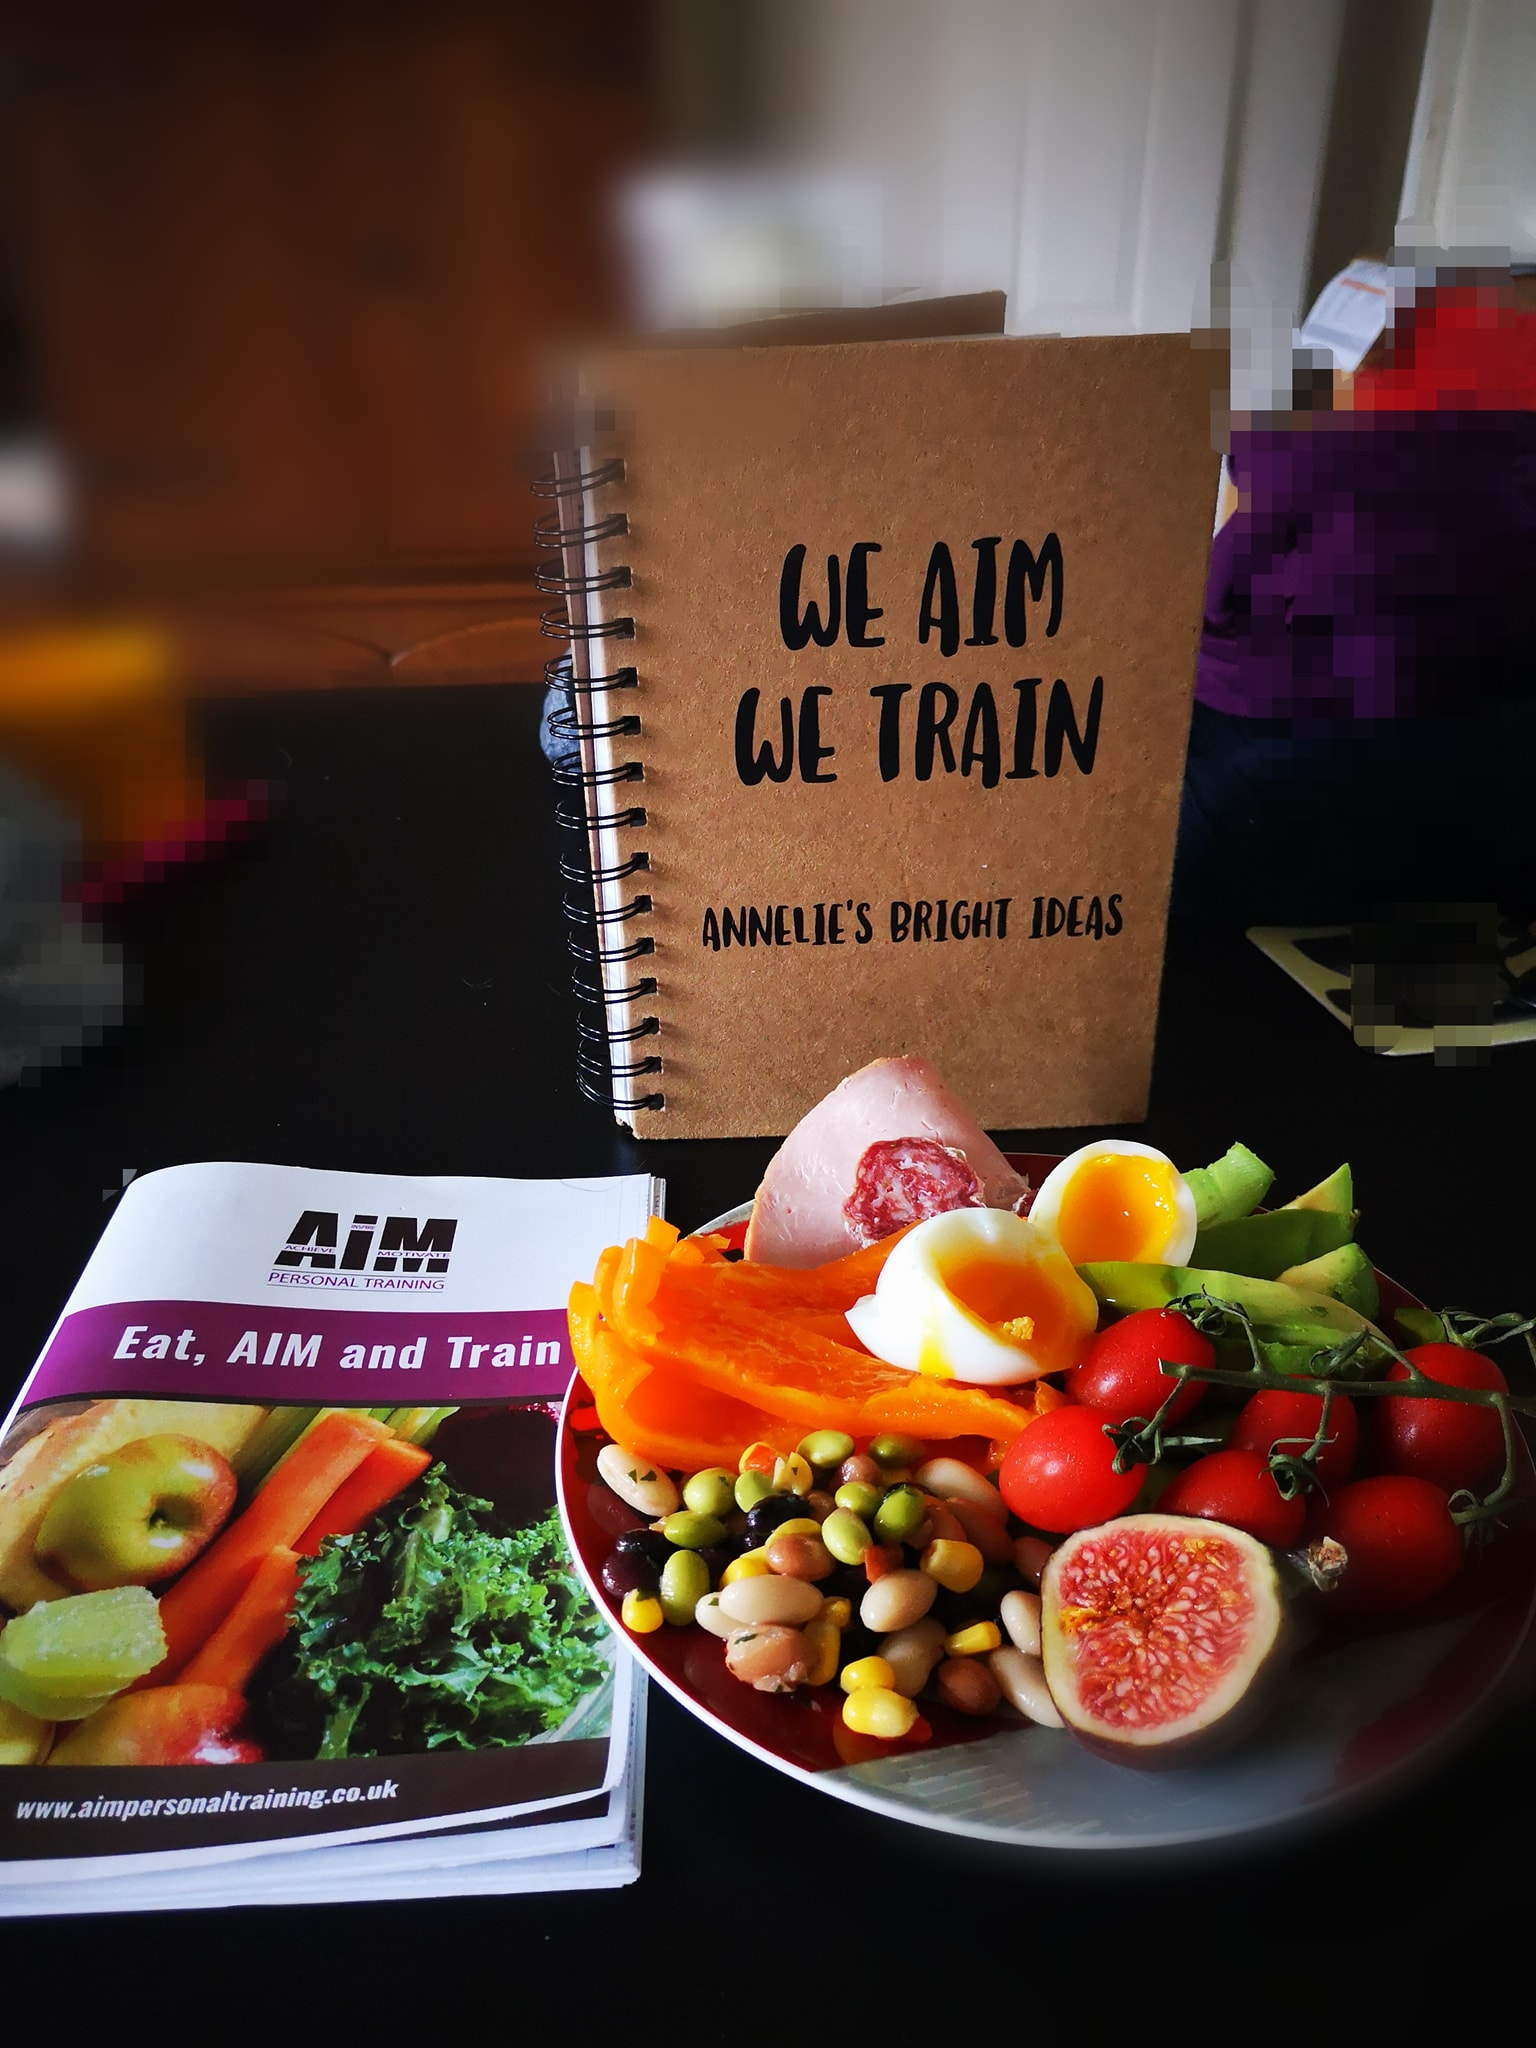 Using my amazing recipe books we can tailor a meal plan that will suit your needs. Macro nutrient & calorie breakdown in each recipe, with delicious options to chose from.